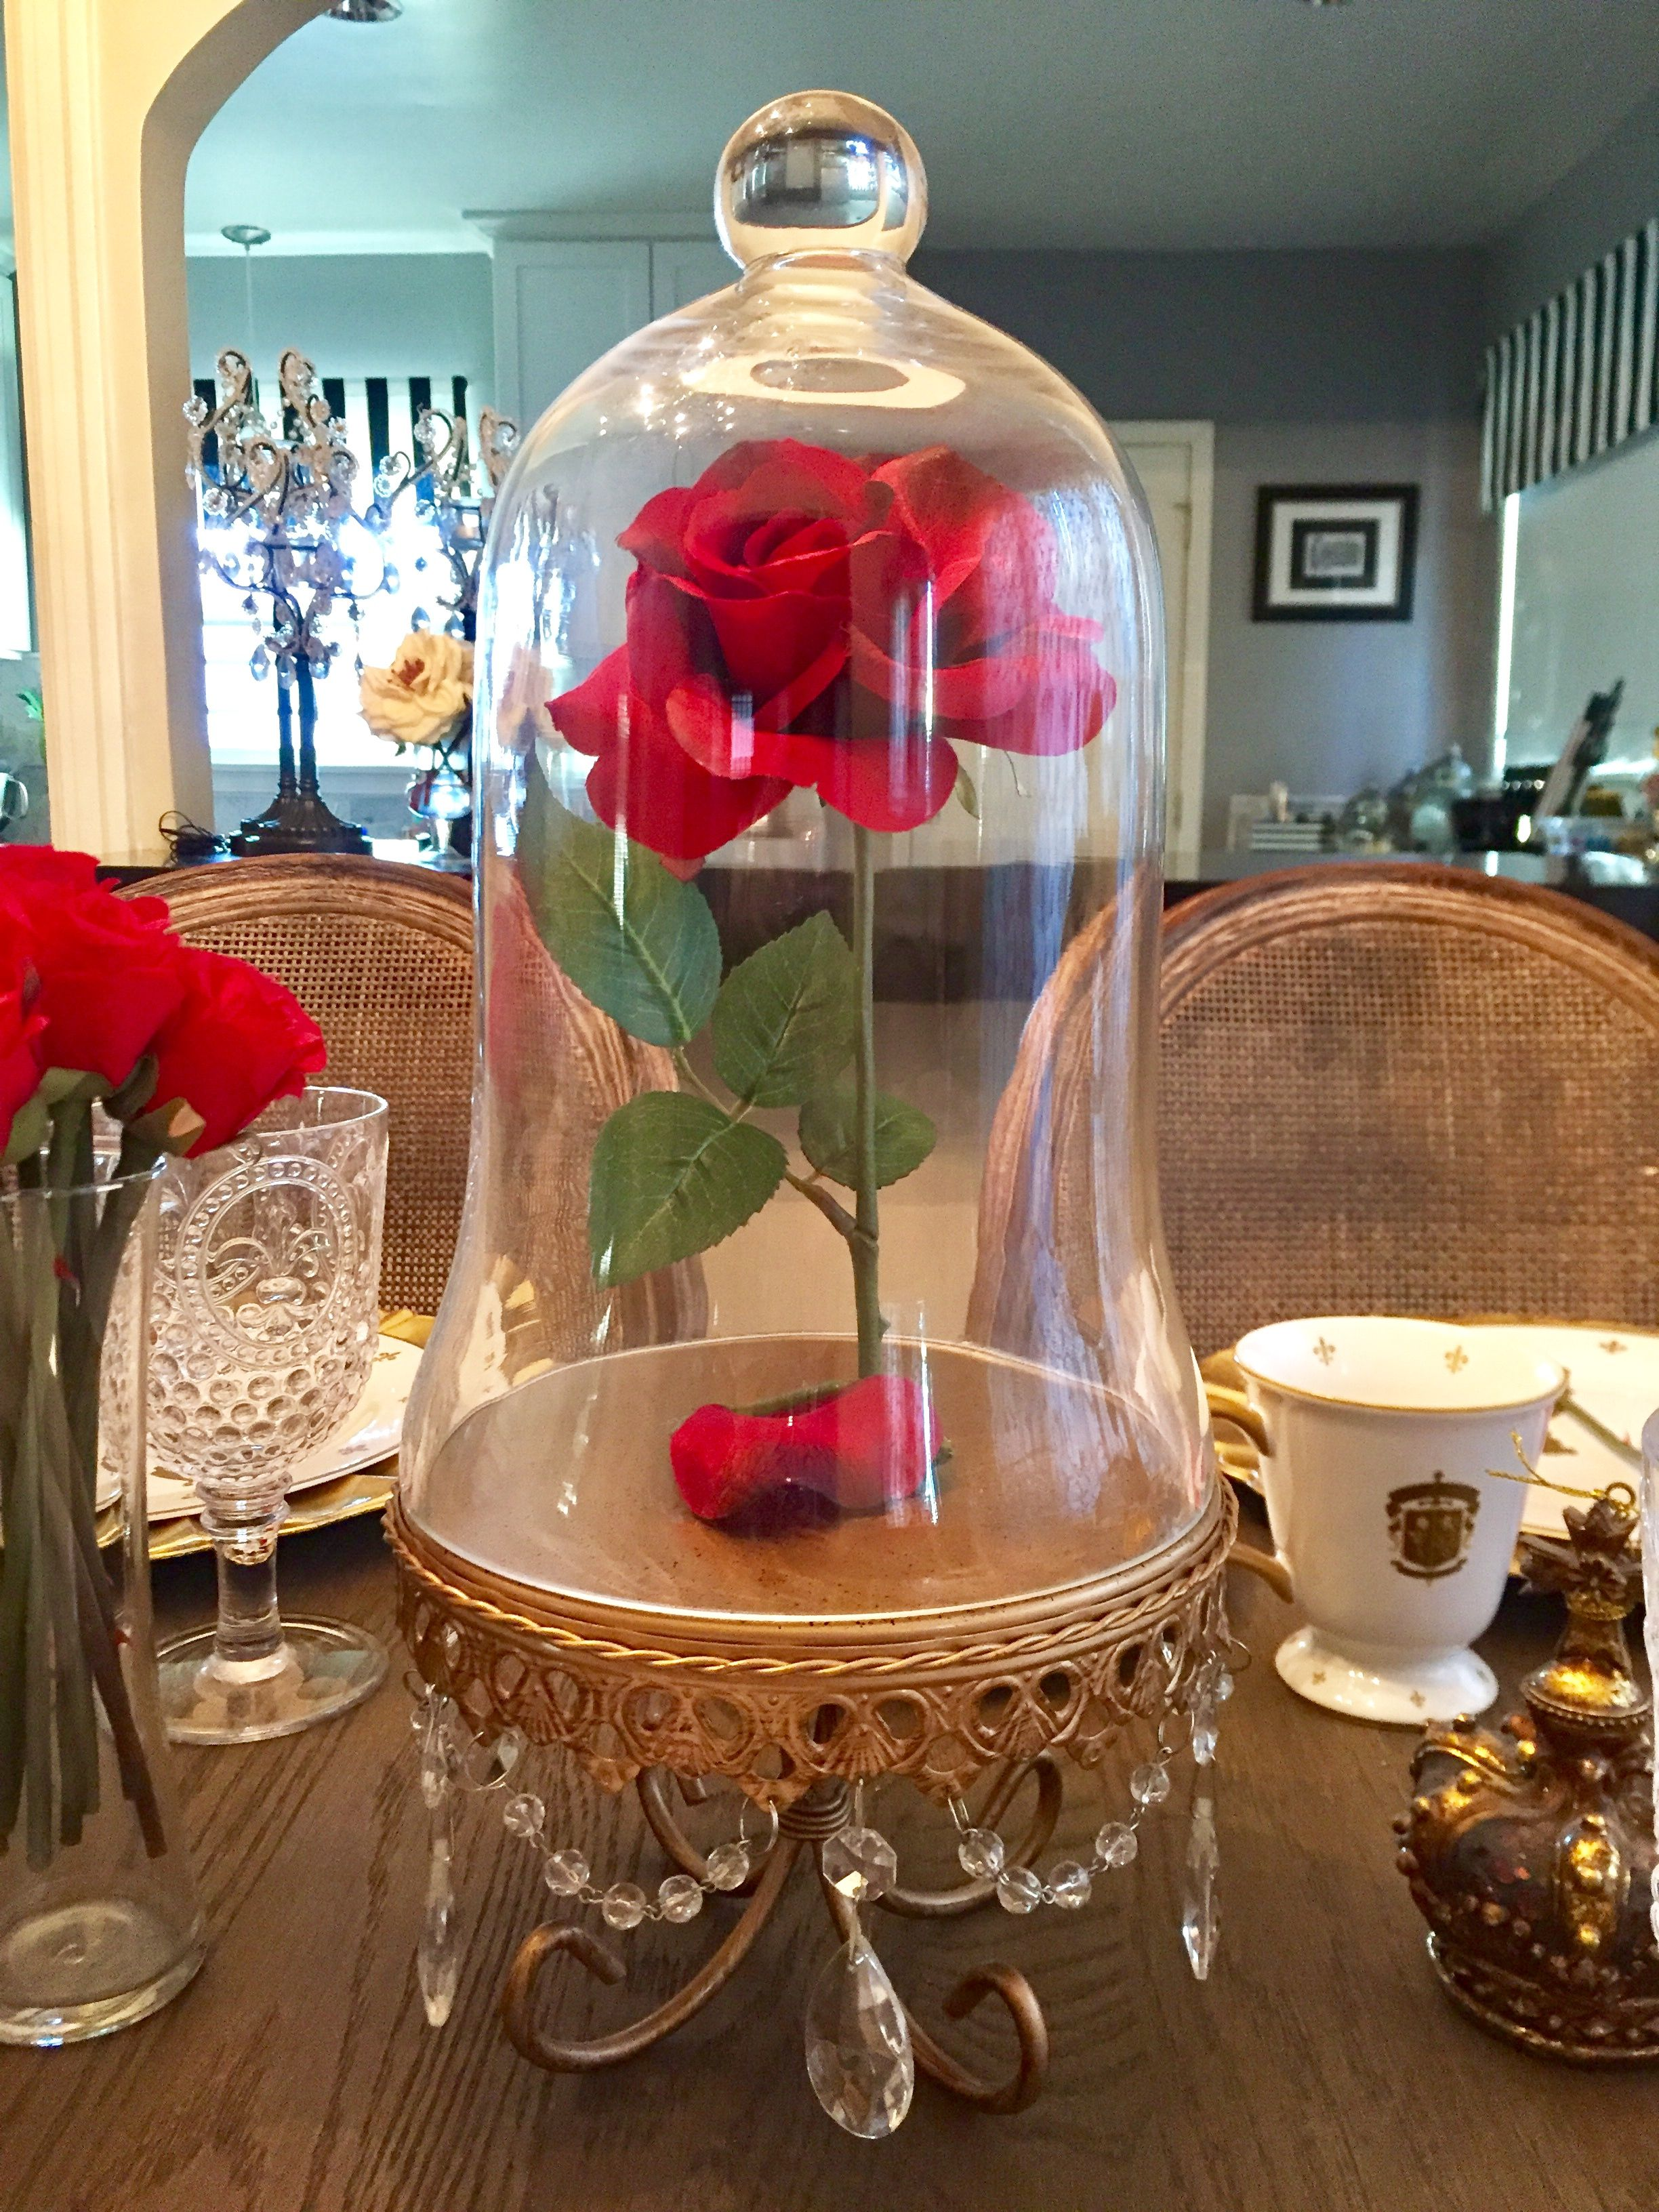 Be Our Guest Dinner Party Beauty And The Beast Enchanted Rose